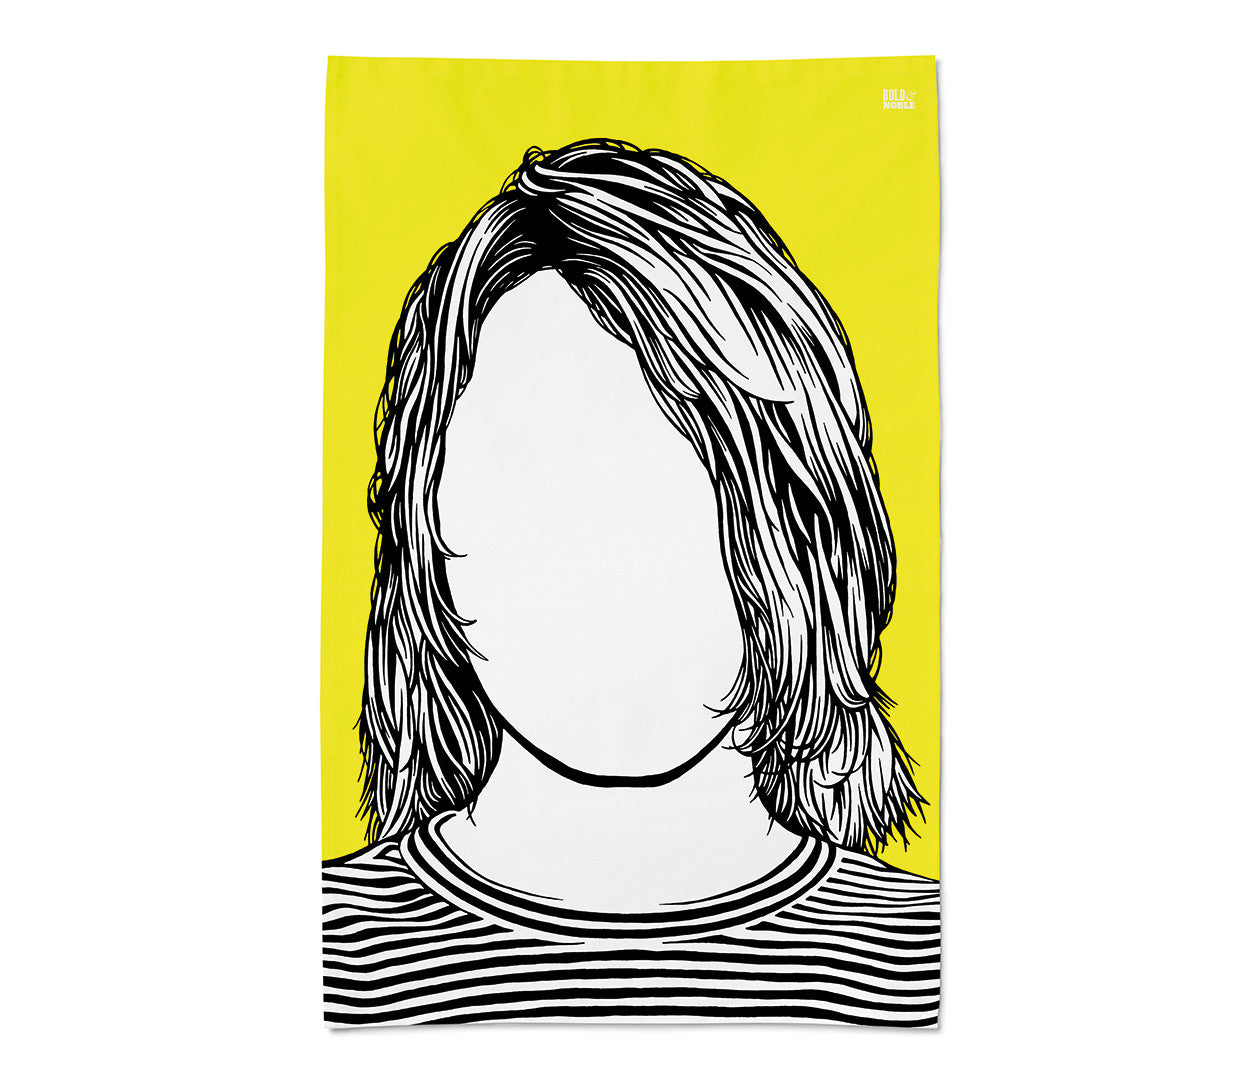 Kurt Cobain Nirvana Rock Icon Tea Towel in Yellow